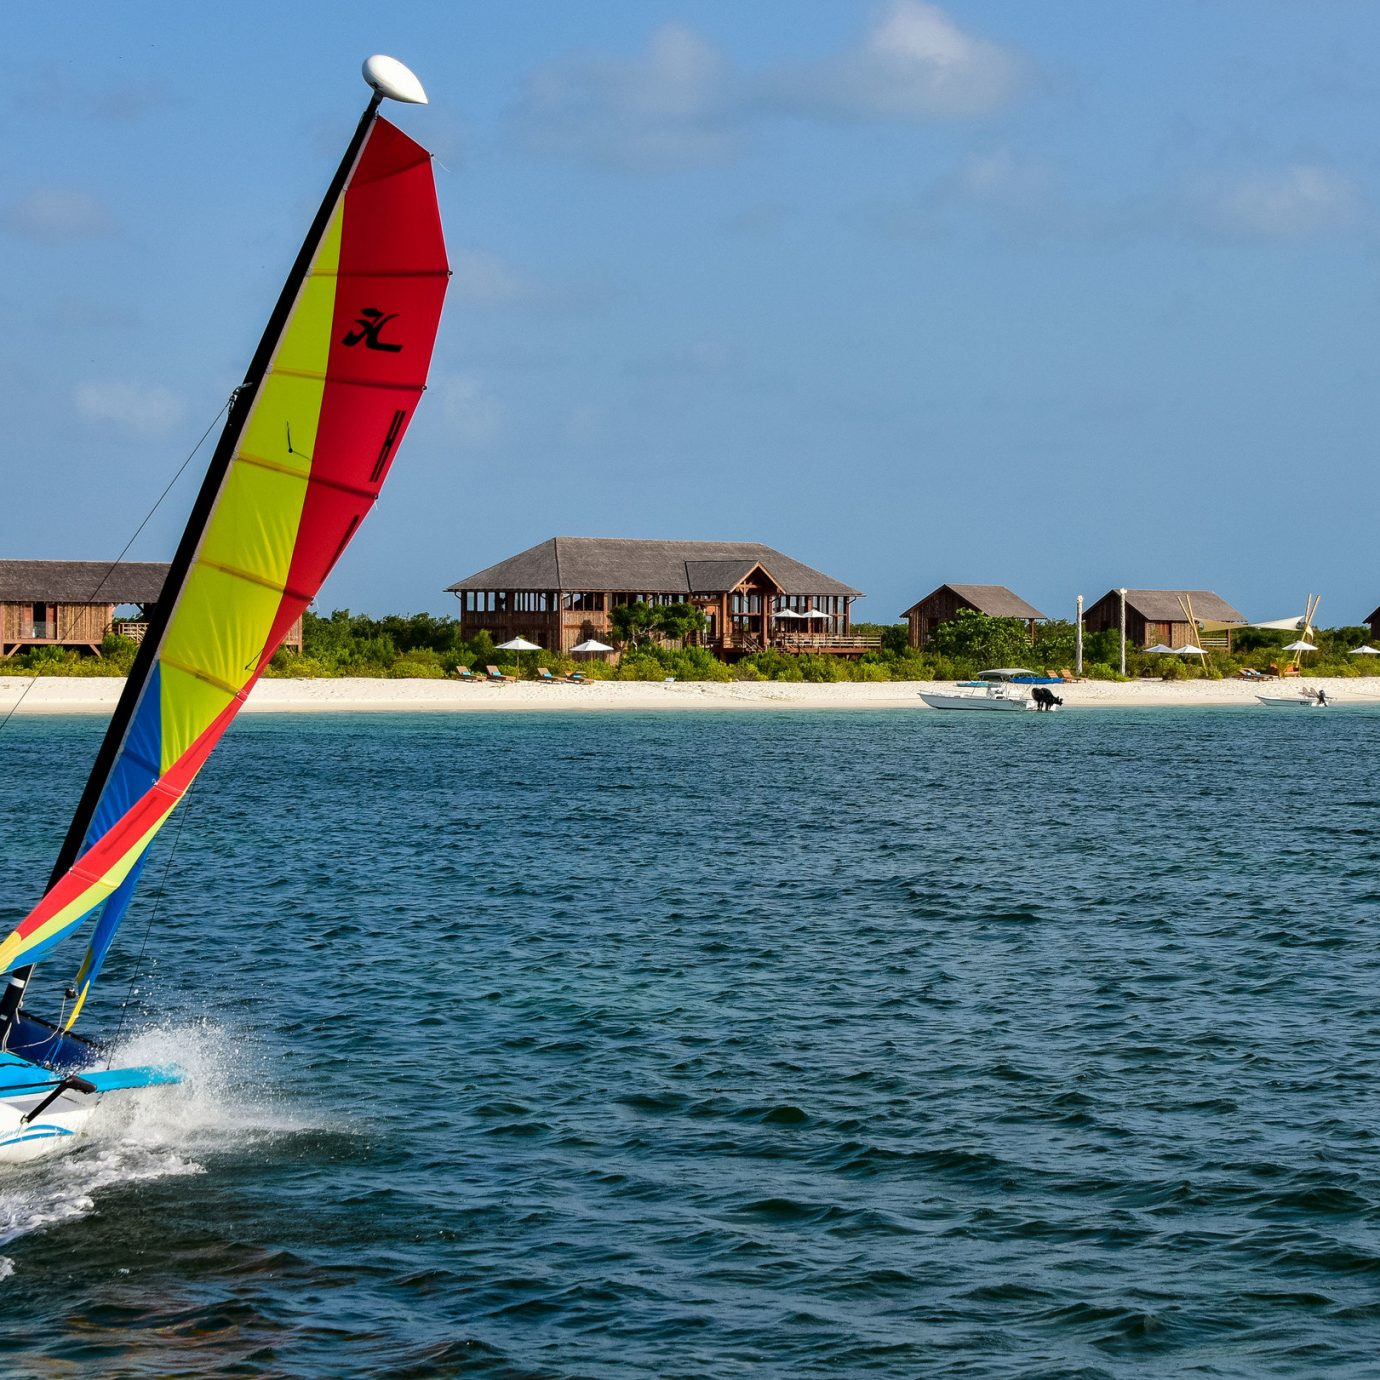 sky water windsurfing water sport sports surfing sail Sport dinghy sailing sailboat Lake wind outdoor recreation vehicle boating Boat Sea recreation wind wave sailing boardsport day